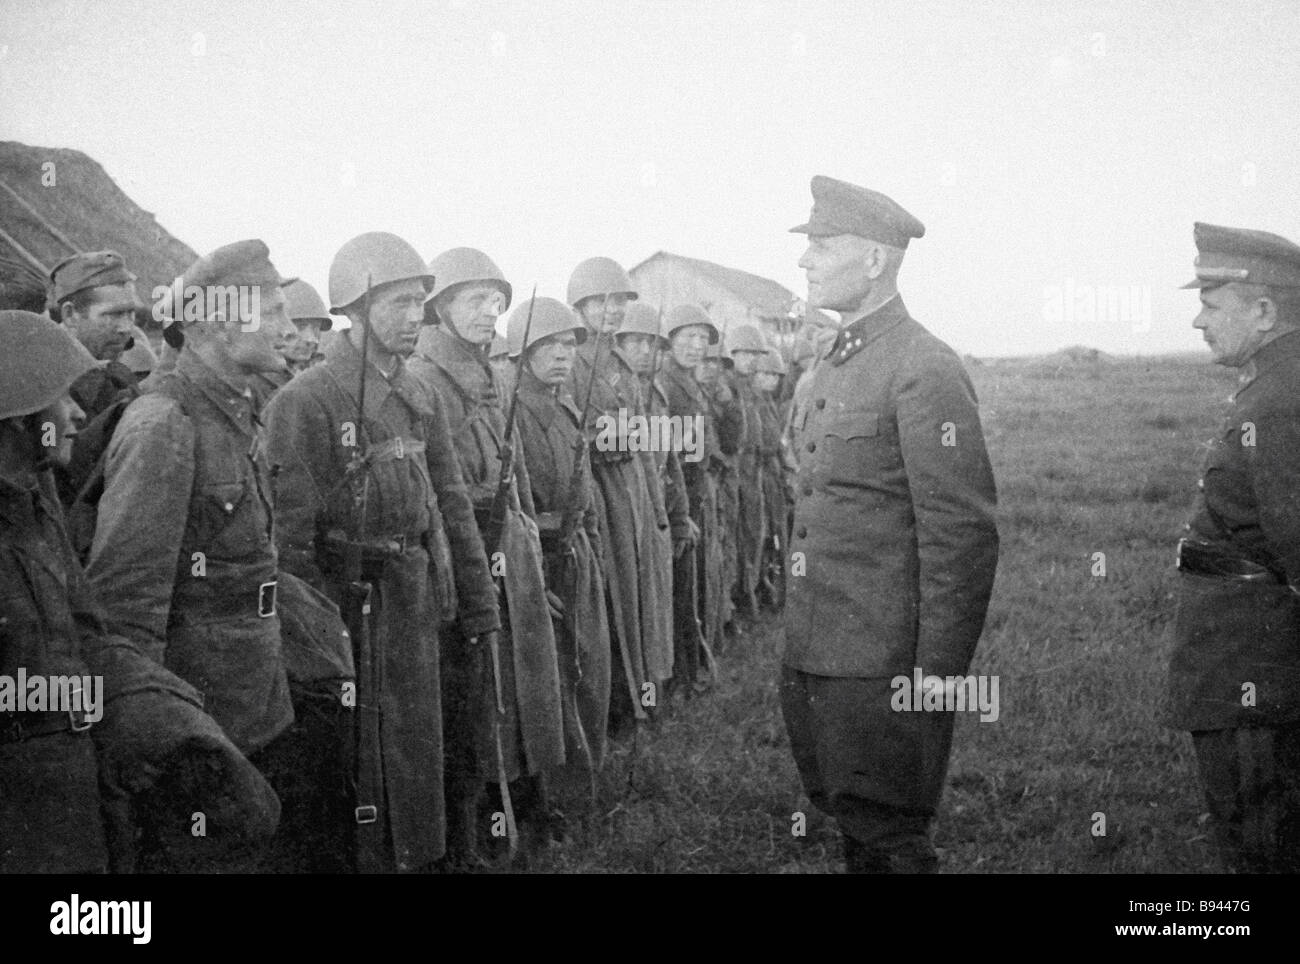 Colonel General Ivan Konev second right the Kalinin Front Commander talking to the soldiers of 31st Army - Stock Image